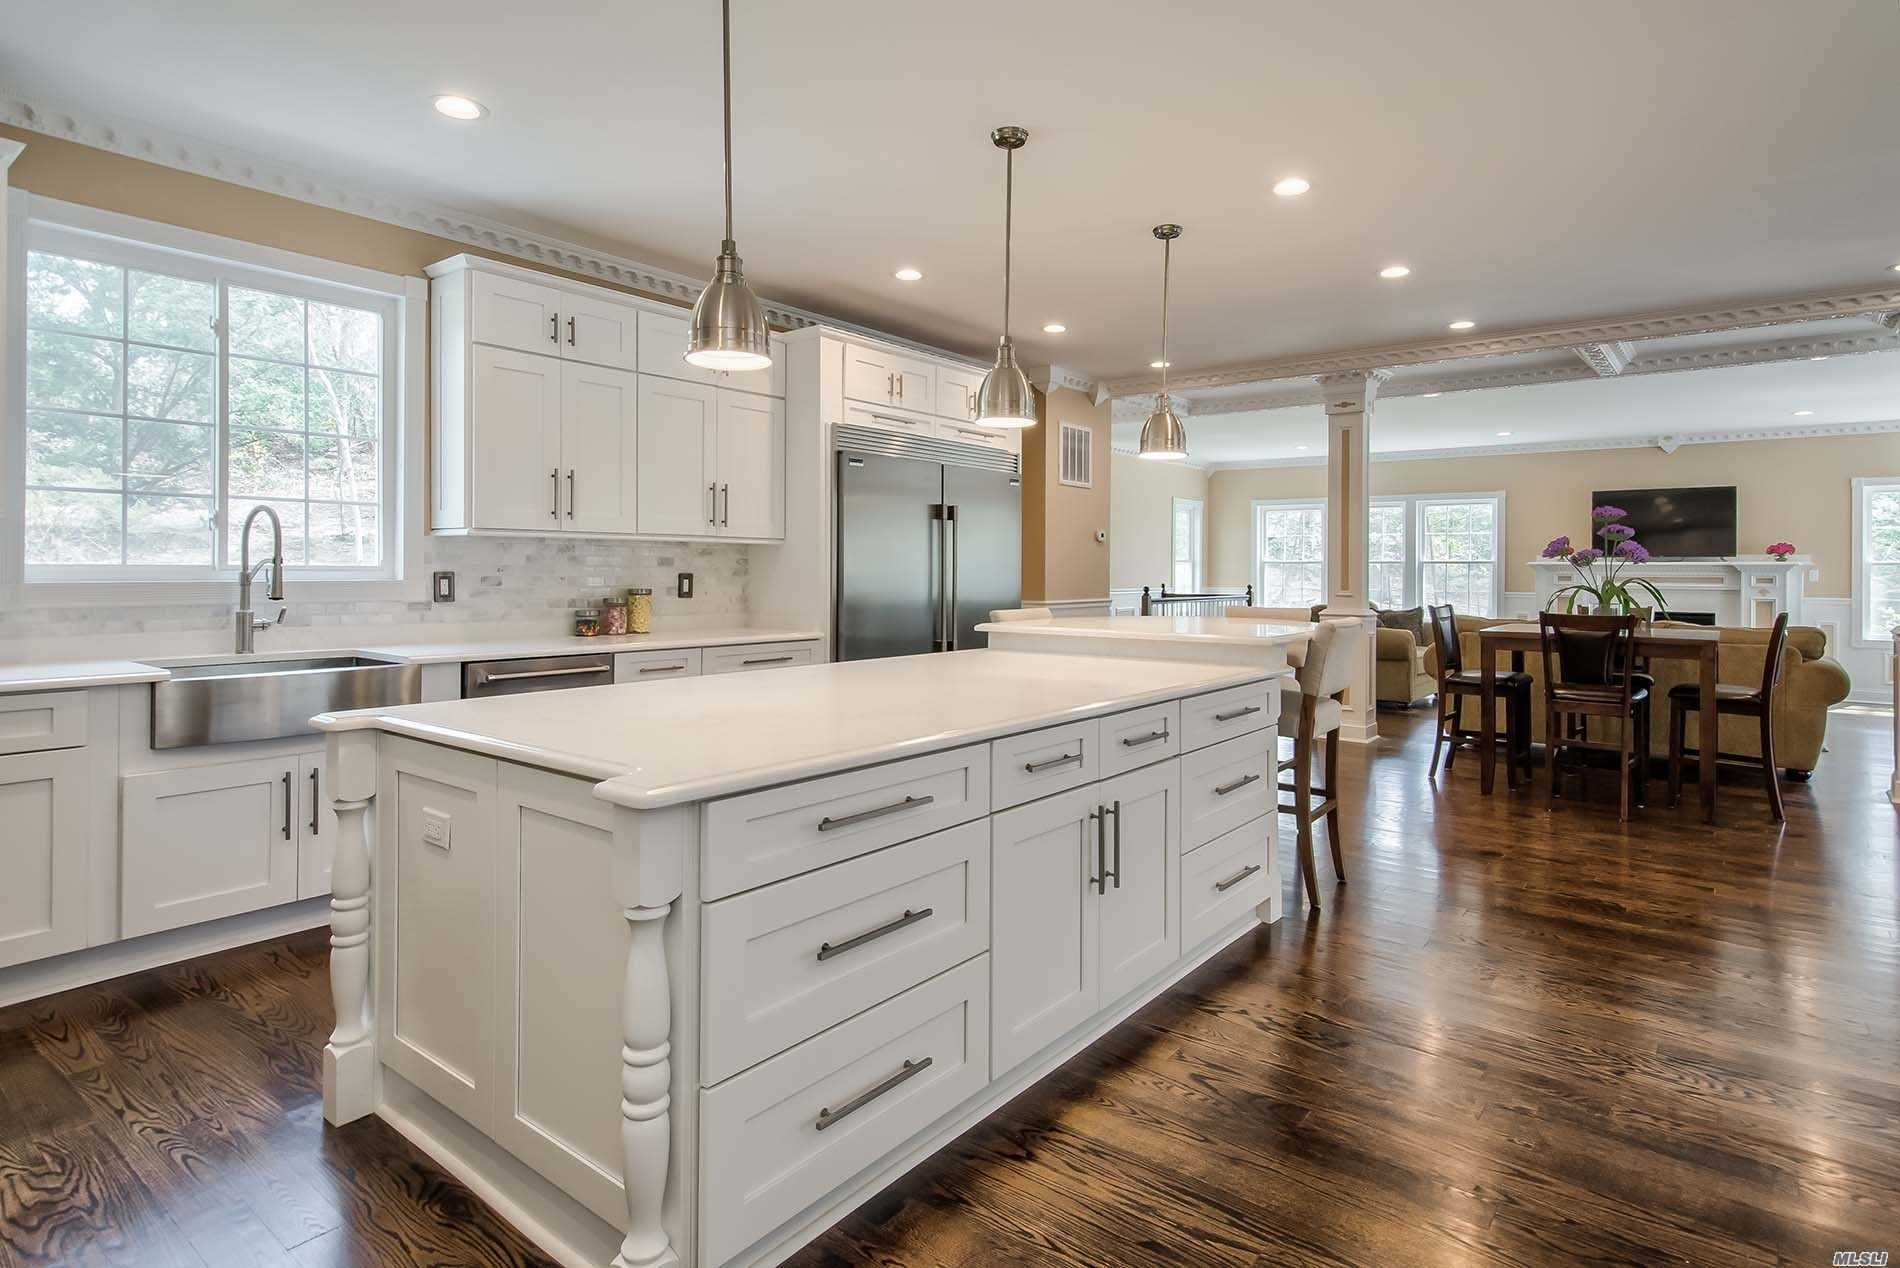 Exquisite New Construction Featuring 5 Bedrooms & 5.5 Designer Baths, 5000+ Sq Ft, On 1 Acre In One Of The Most Sought After Neighborhoods In The Famed Syosset School District. Custom Designed W/The Finest Finishes, Fabulous For Entertaining With An Open Floor Plan, Great Rm W/Fpl, Stunning Kitchen, Breakfast Rm, Formal Dining & Living Rms, Master Suite W/2 Walk-In-Closets. Finished Bsmnt W/Ose. Private & Tranquil Backyard Setting W/Trex Decking & Inground Pool. Exceptional In Every Way!